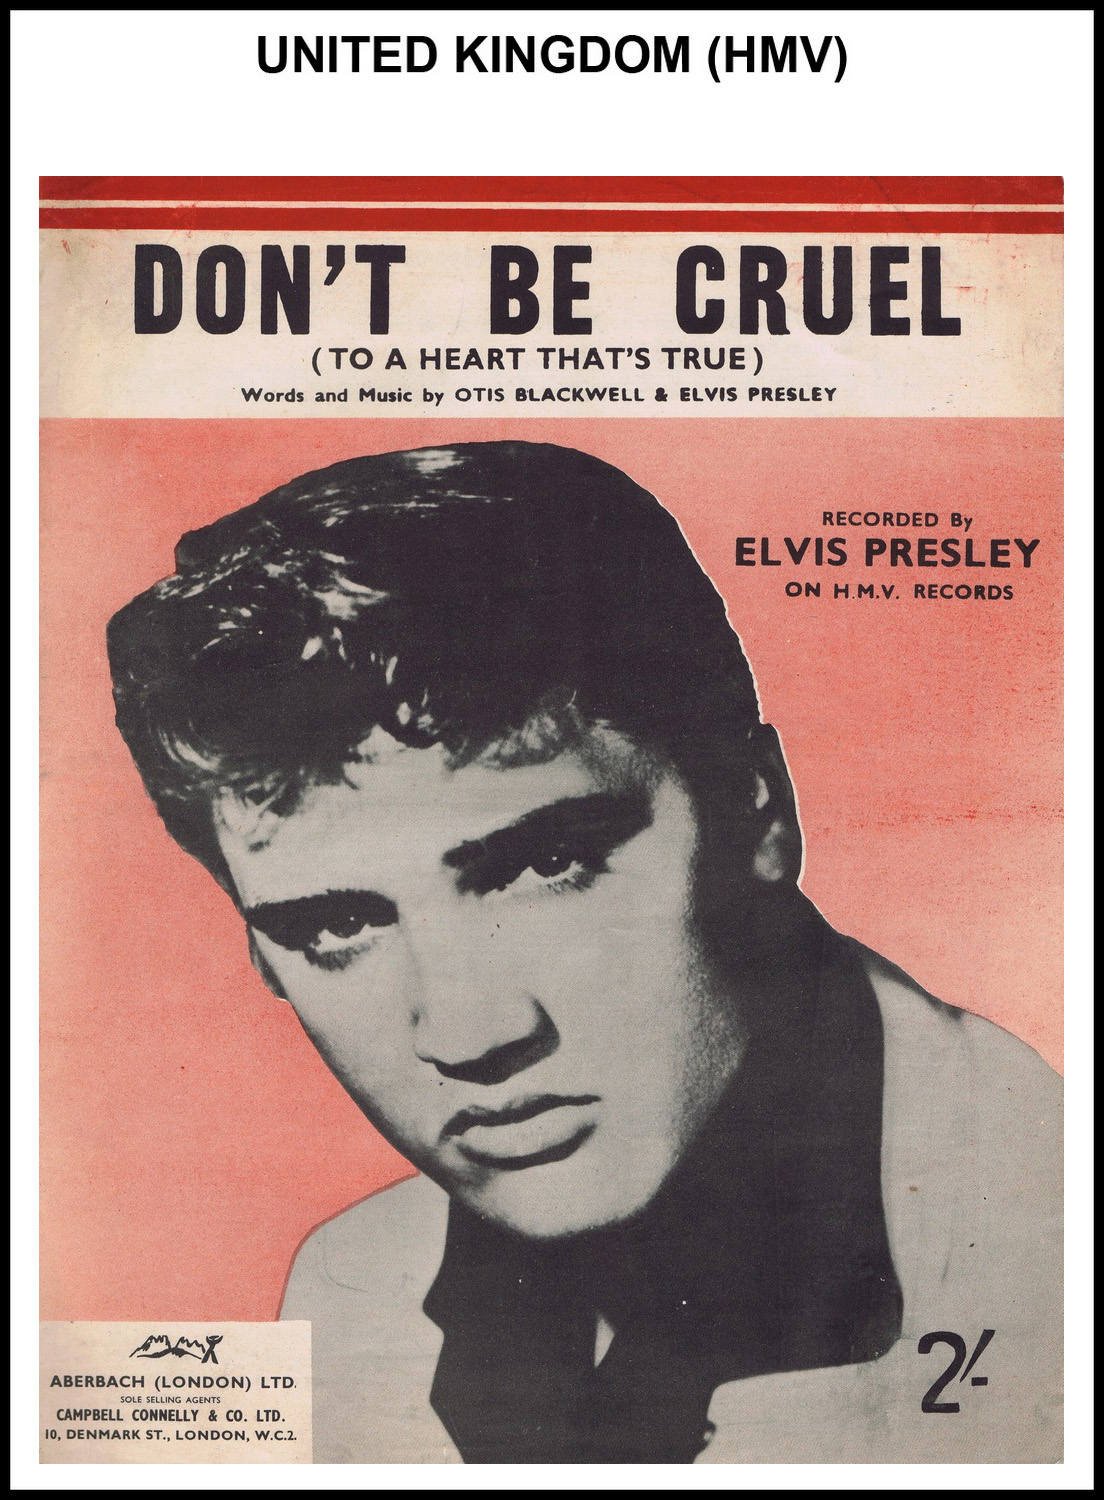 1956 - Don't Be Cruel (UK, HMV) (CHRIS GILES COLLECTION)